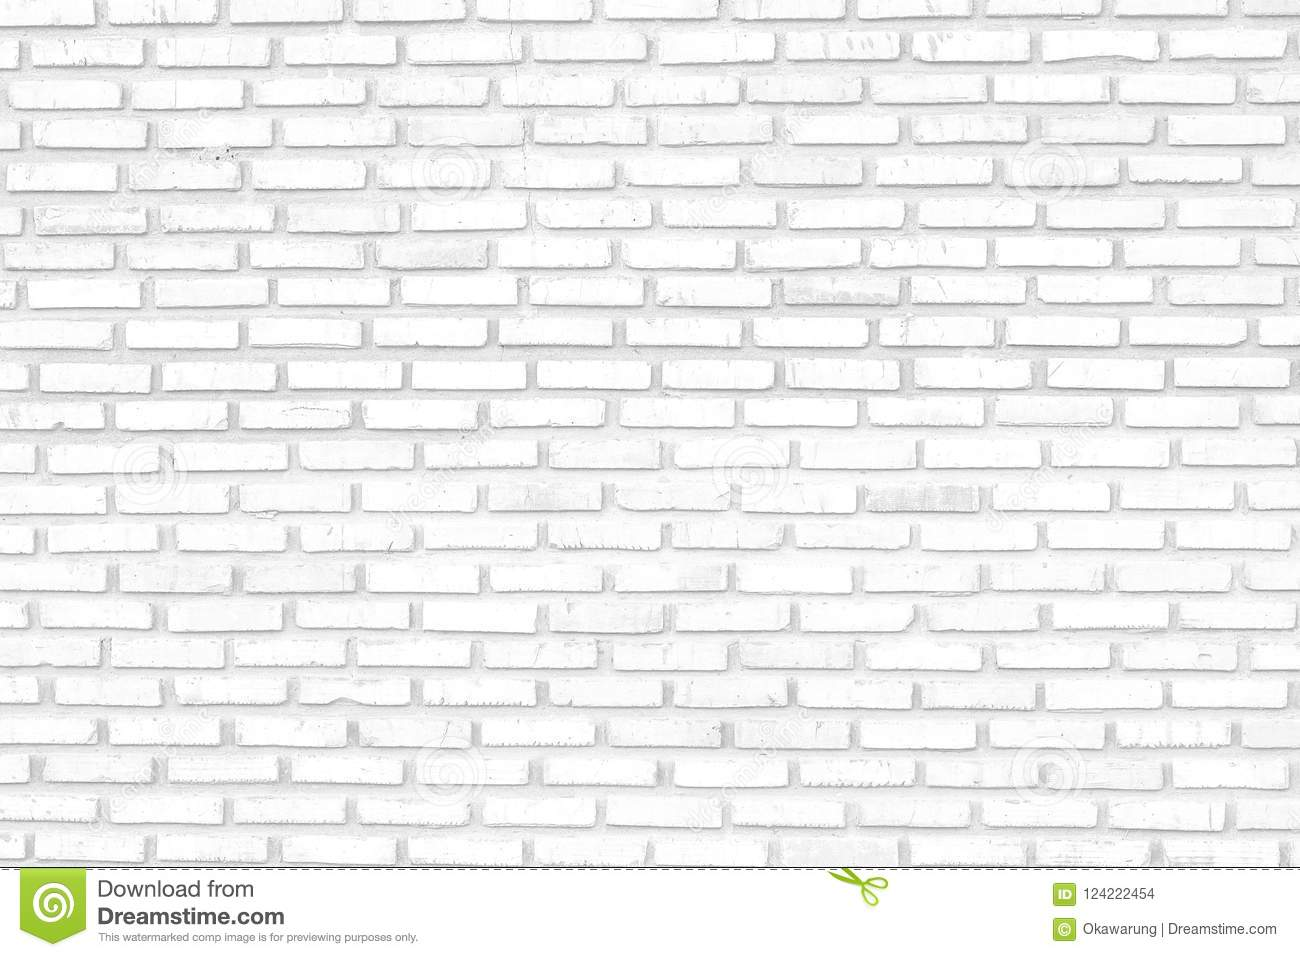 White Brick Wall Background White Brick Wall Texture Of Modern Ideal For Background And Used In Interior Design Stock Photo Image Of Architecture Marble 124222454